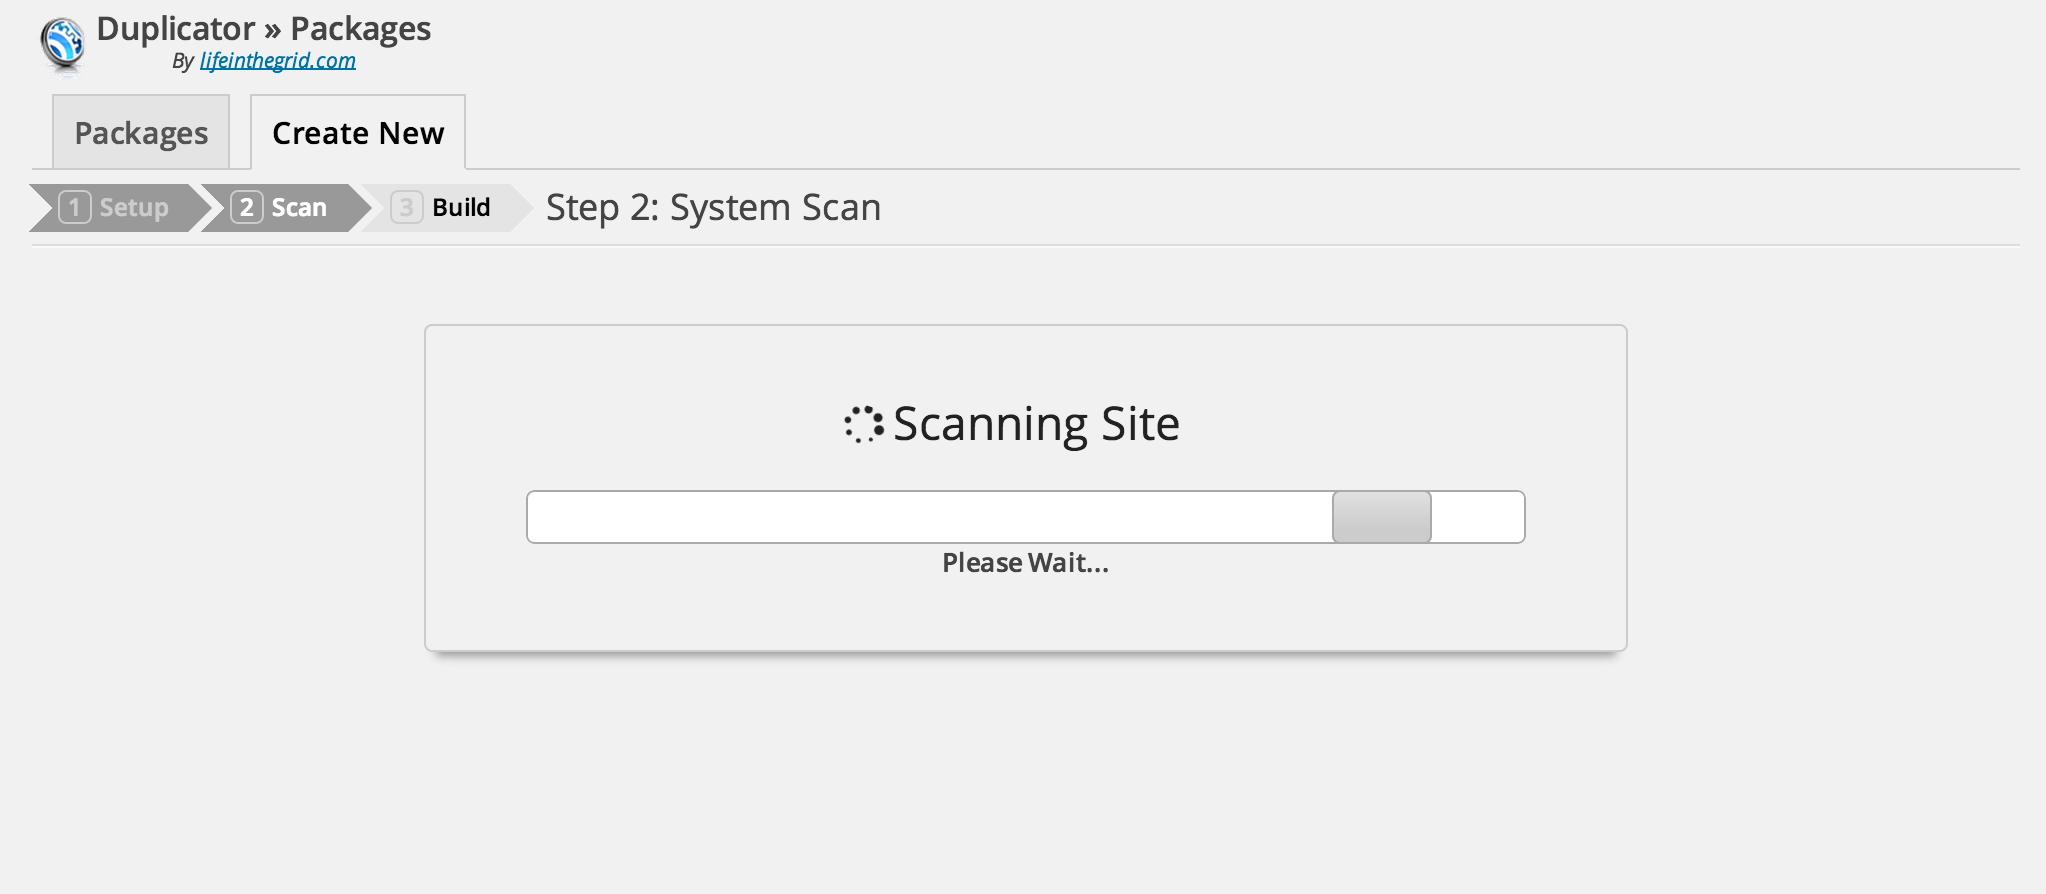 Wait for Duplicator to do a System Scan